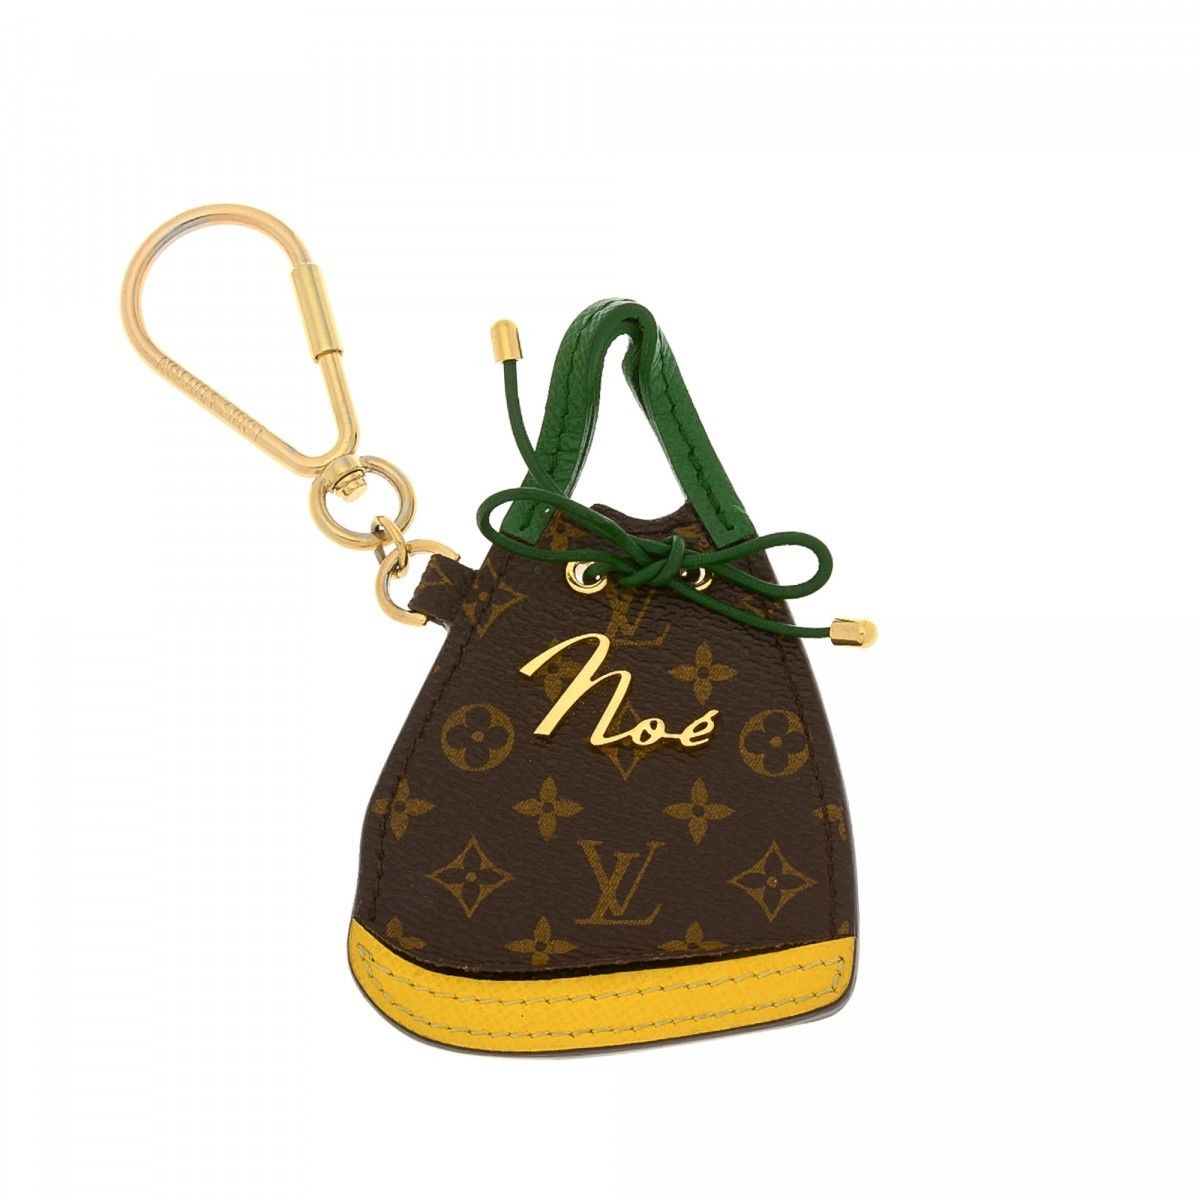 louis vuitton porte cles bb noe key chain bag charm. Black Bedroom Furniture Sets. Home Design Ideas